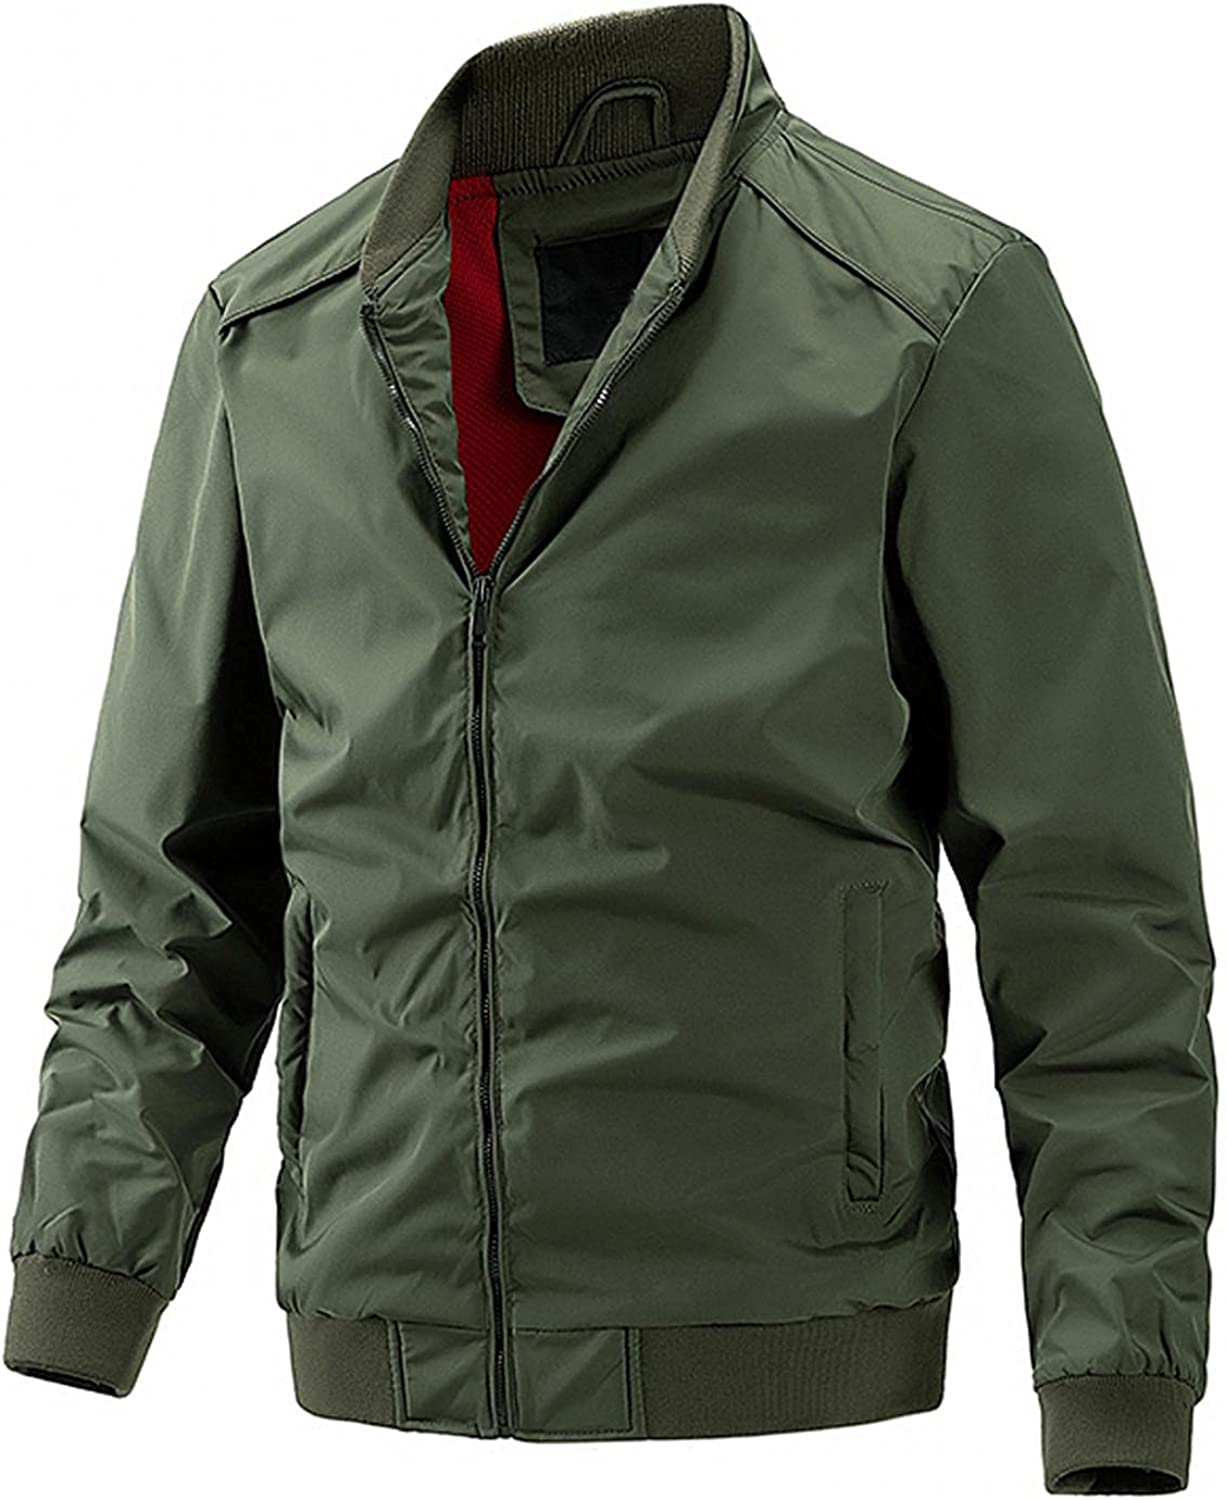 Men's Military Jackets Lightweight Casual Windbreaker Autumn Cotton Bomber Jacket Outwear with Pockets